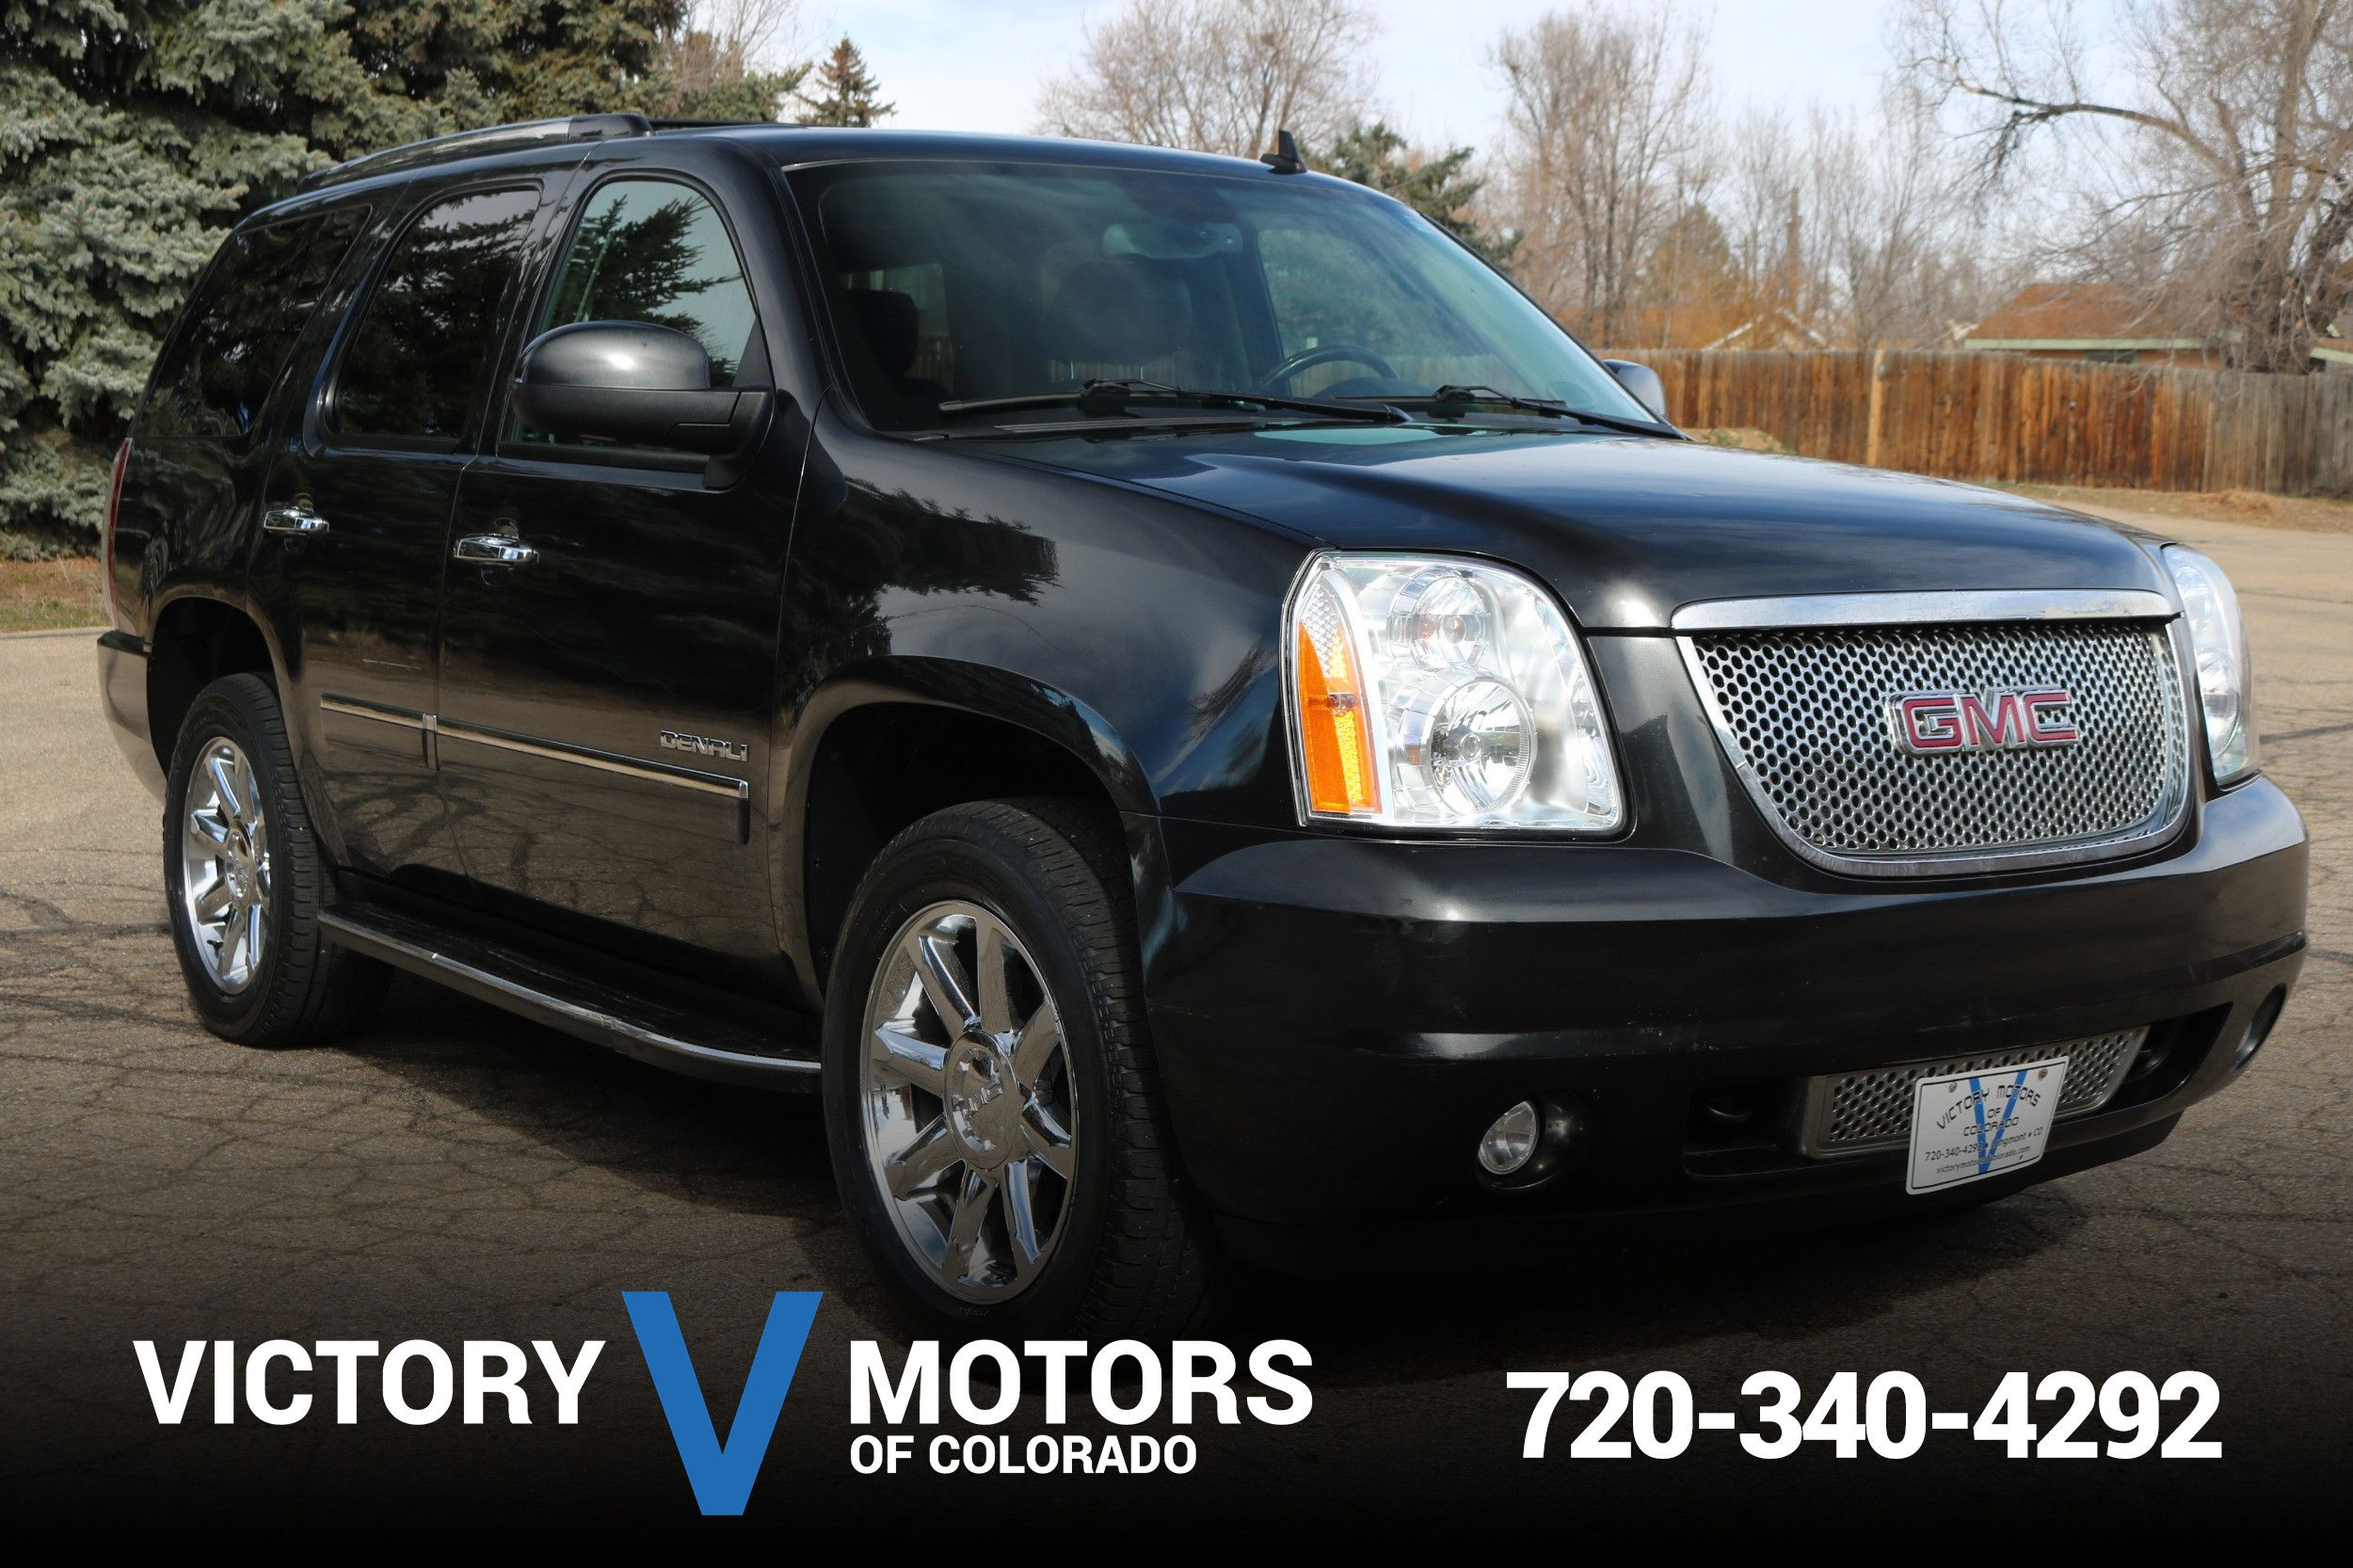 us content gmc pressroom images photos galleries pages other media historicdenali yukon states united detail vehicles en denali